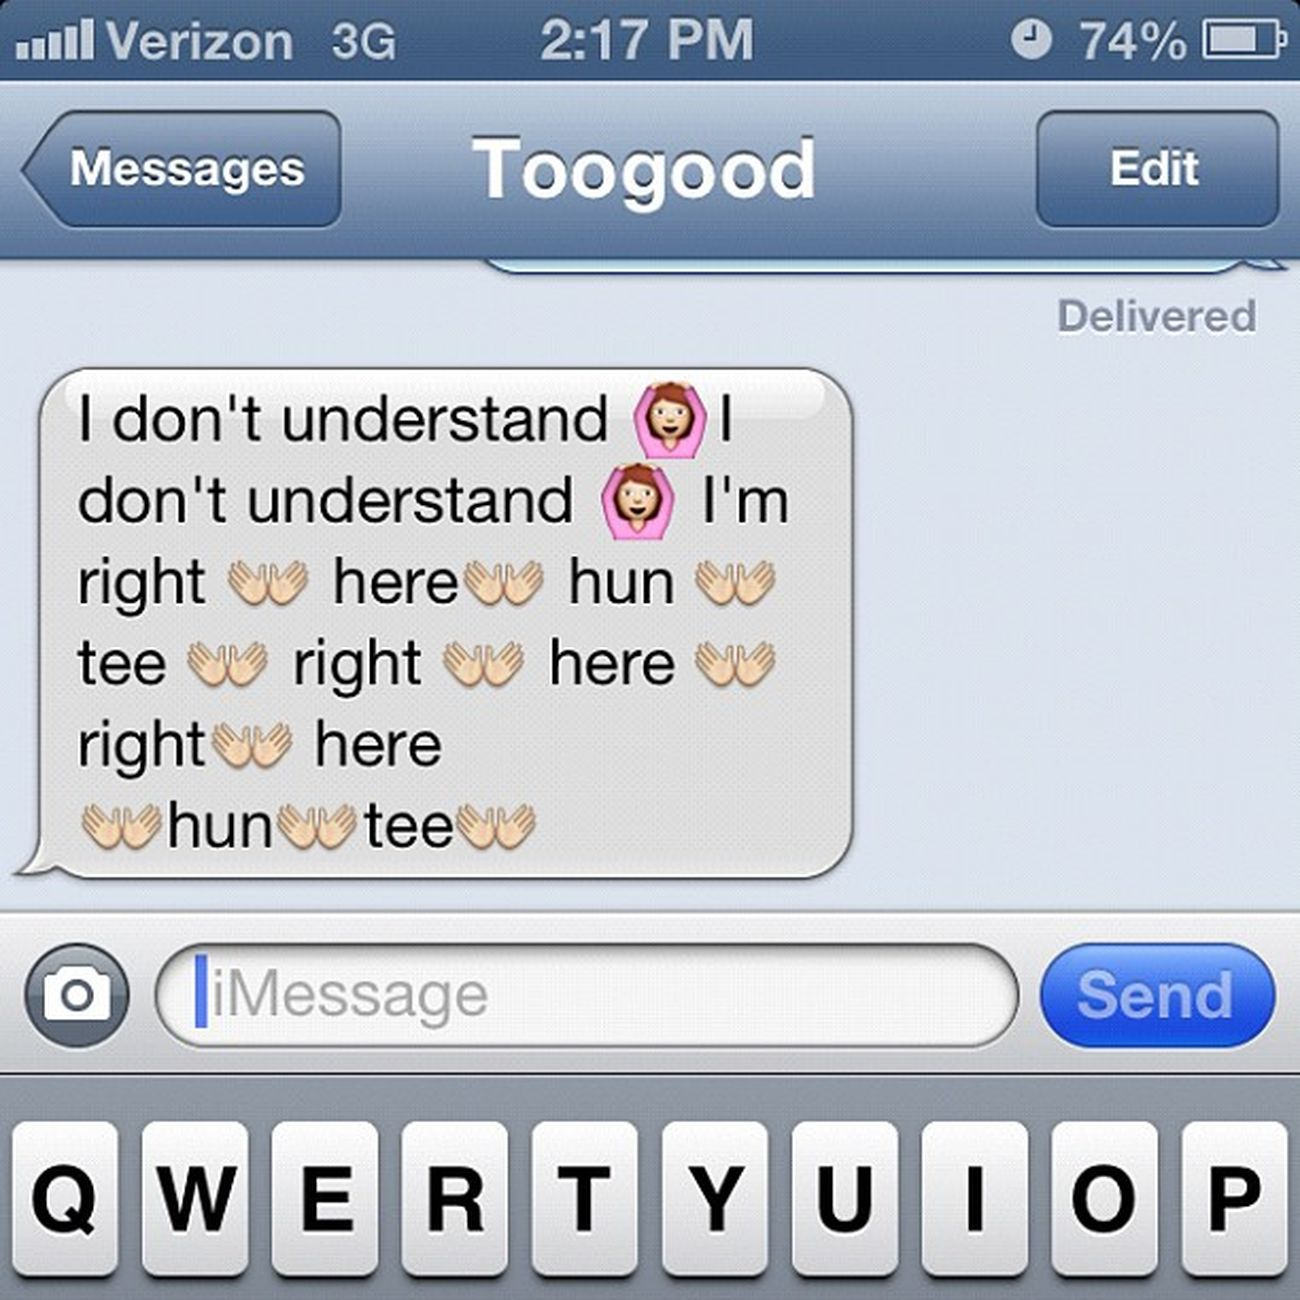 Lol. This bitch @ayo_tooqood21 BadGirlsClub Bgc9